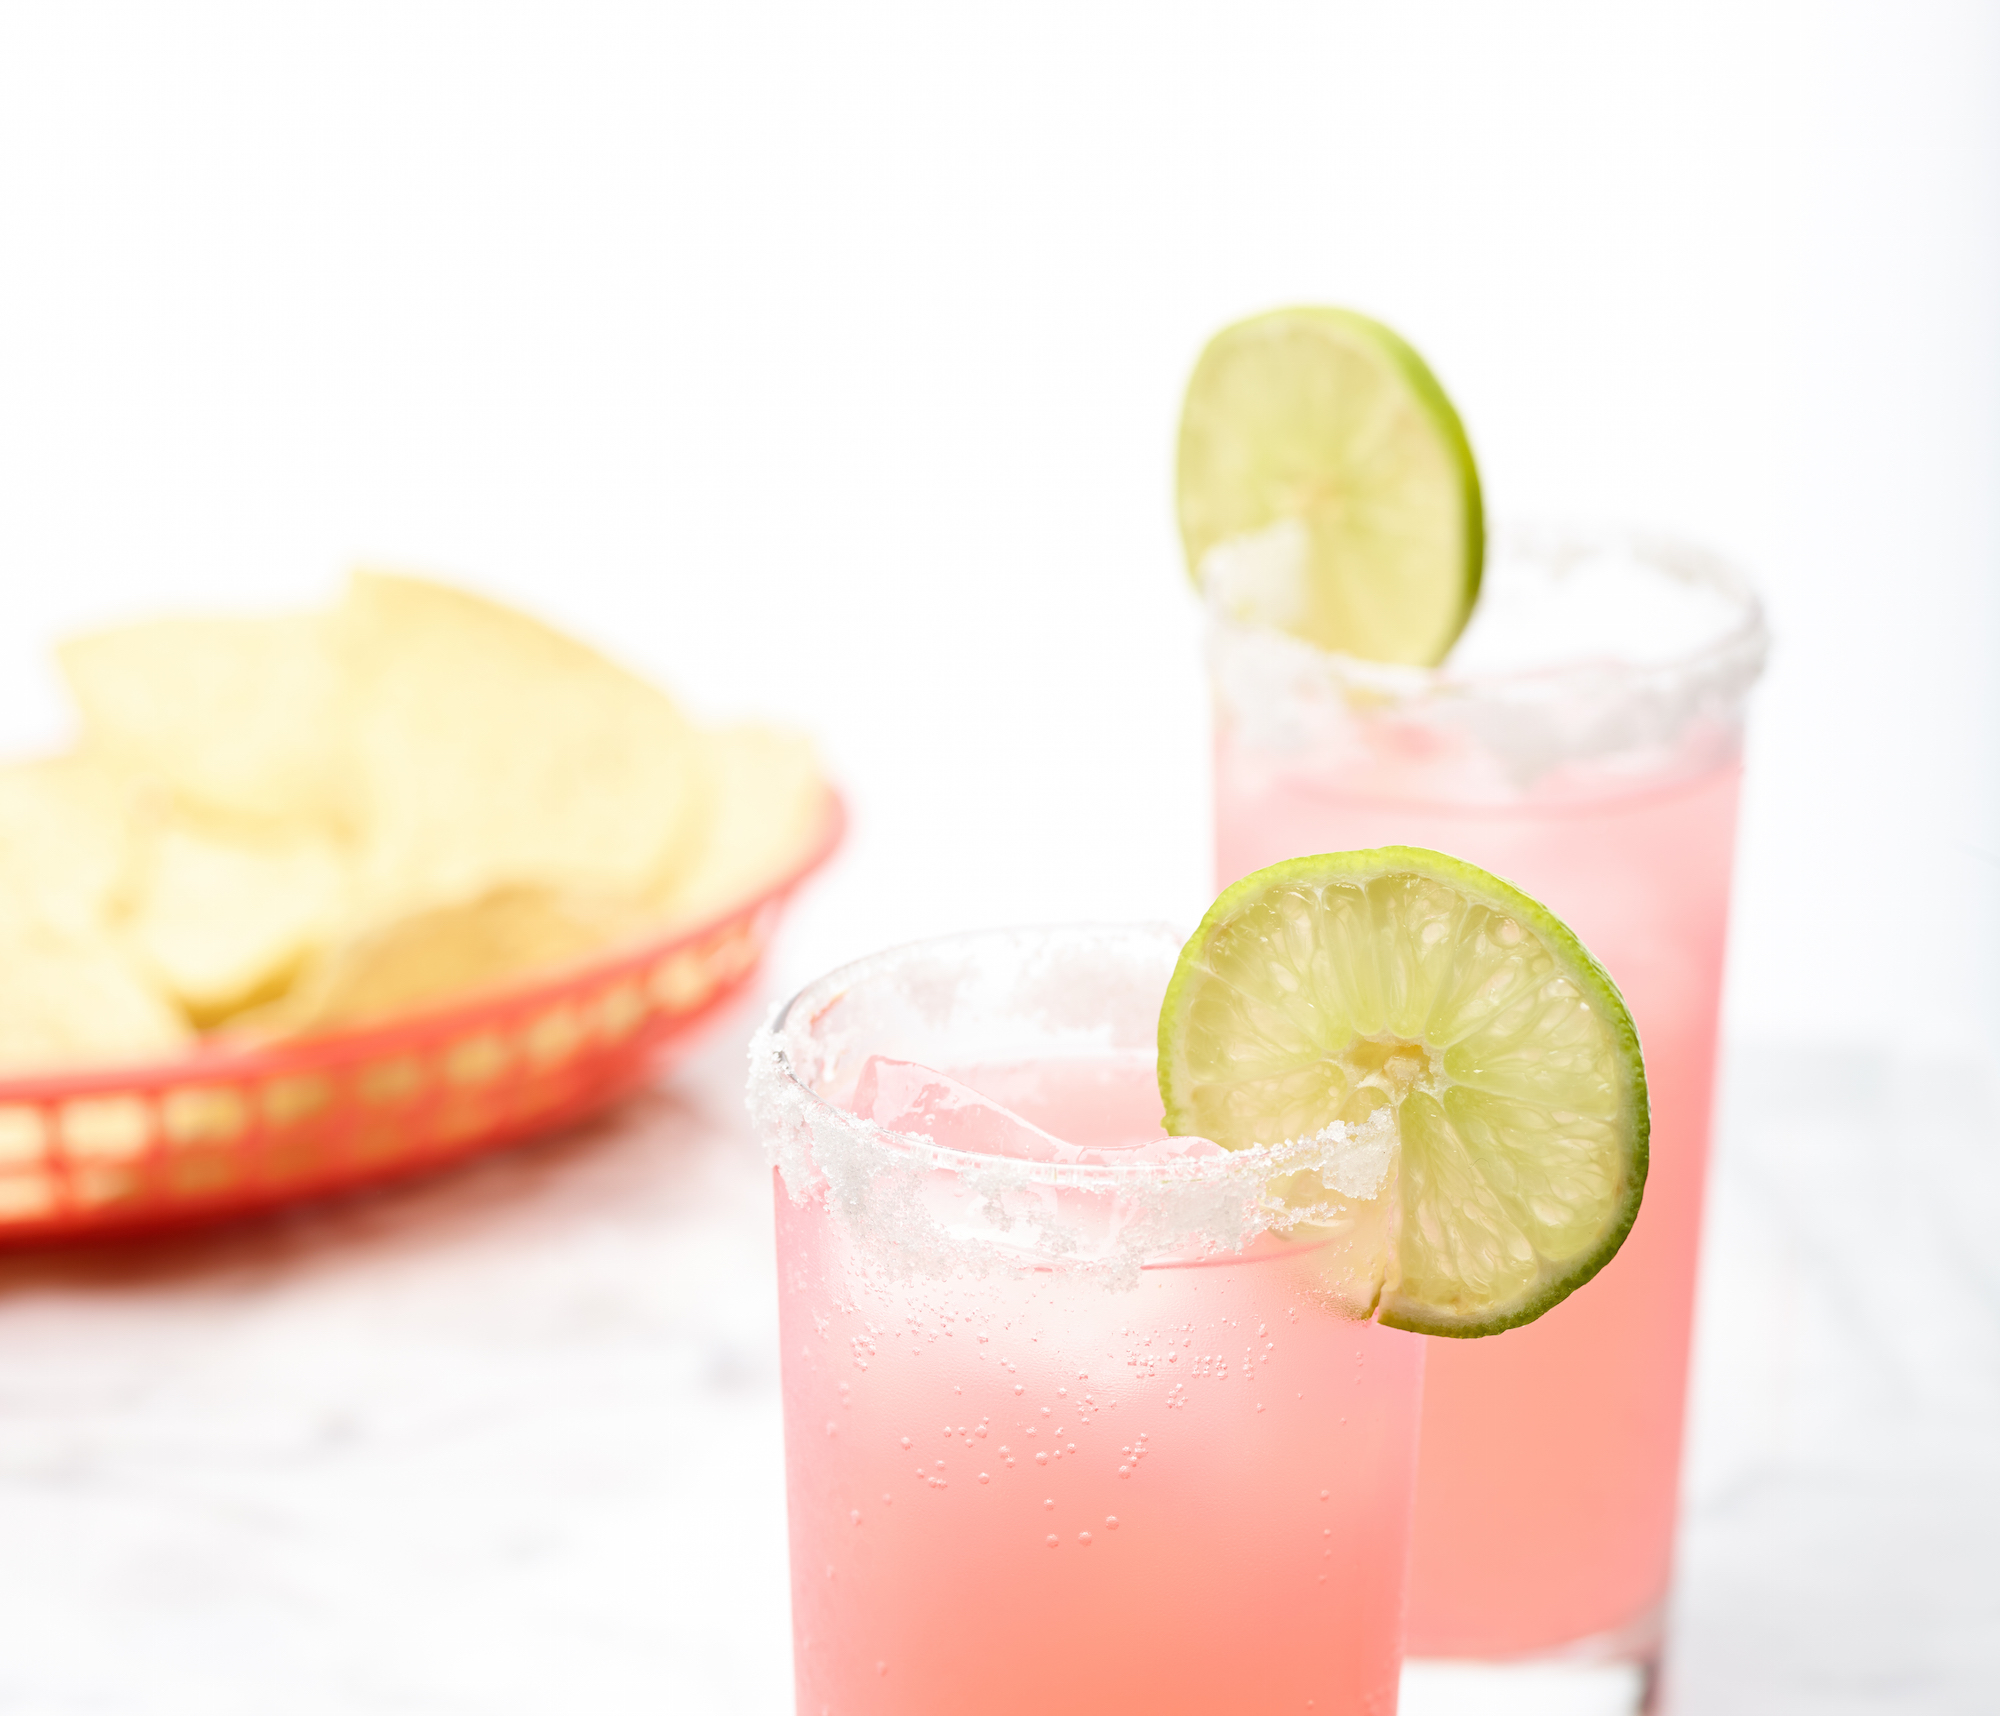 Rub the lime on the rim of a tall glass and salt the rim. image: felicia perretti